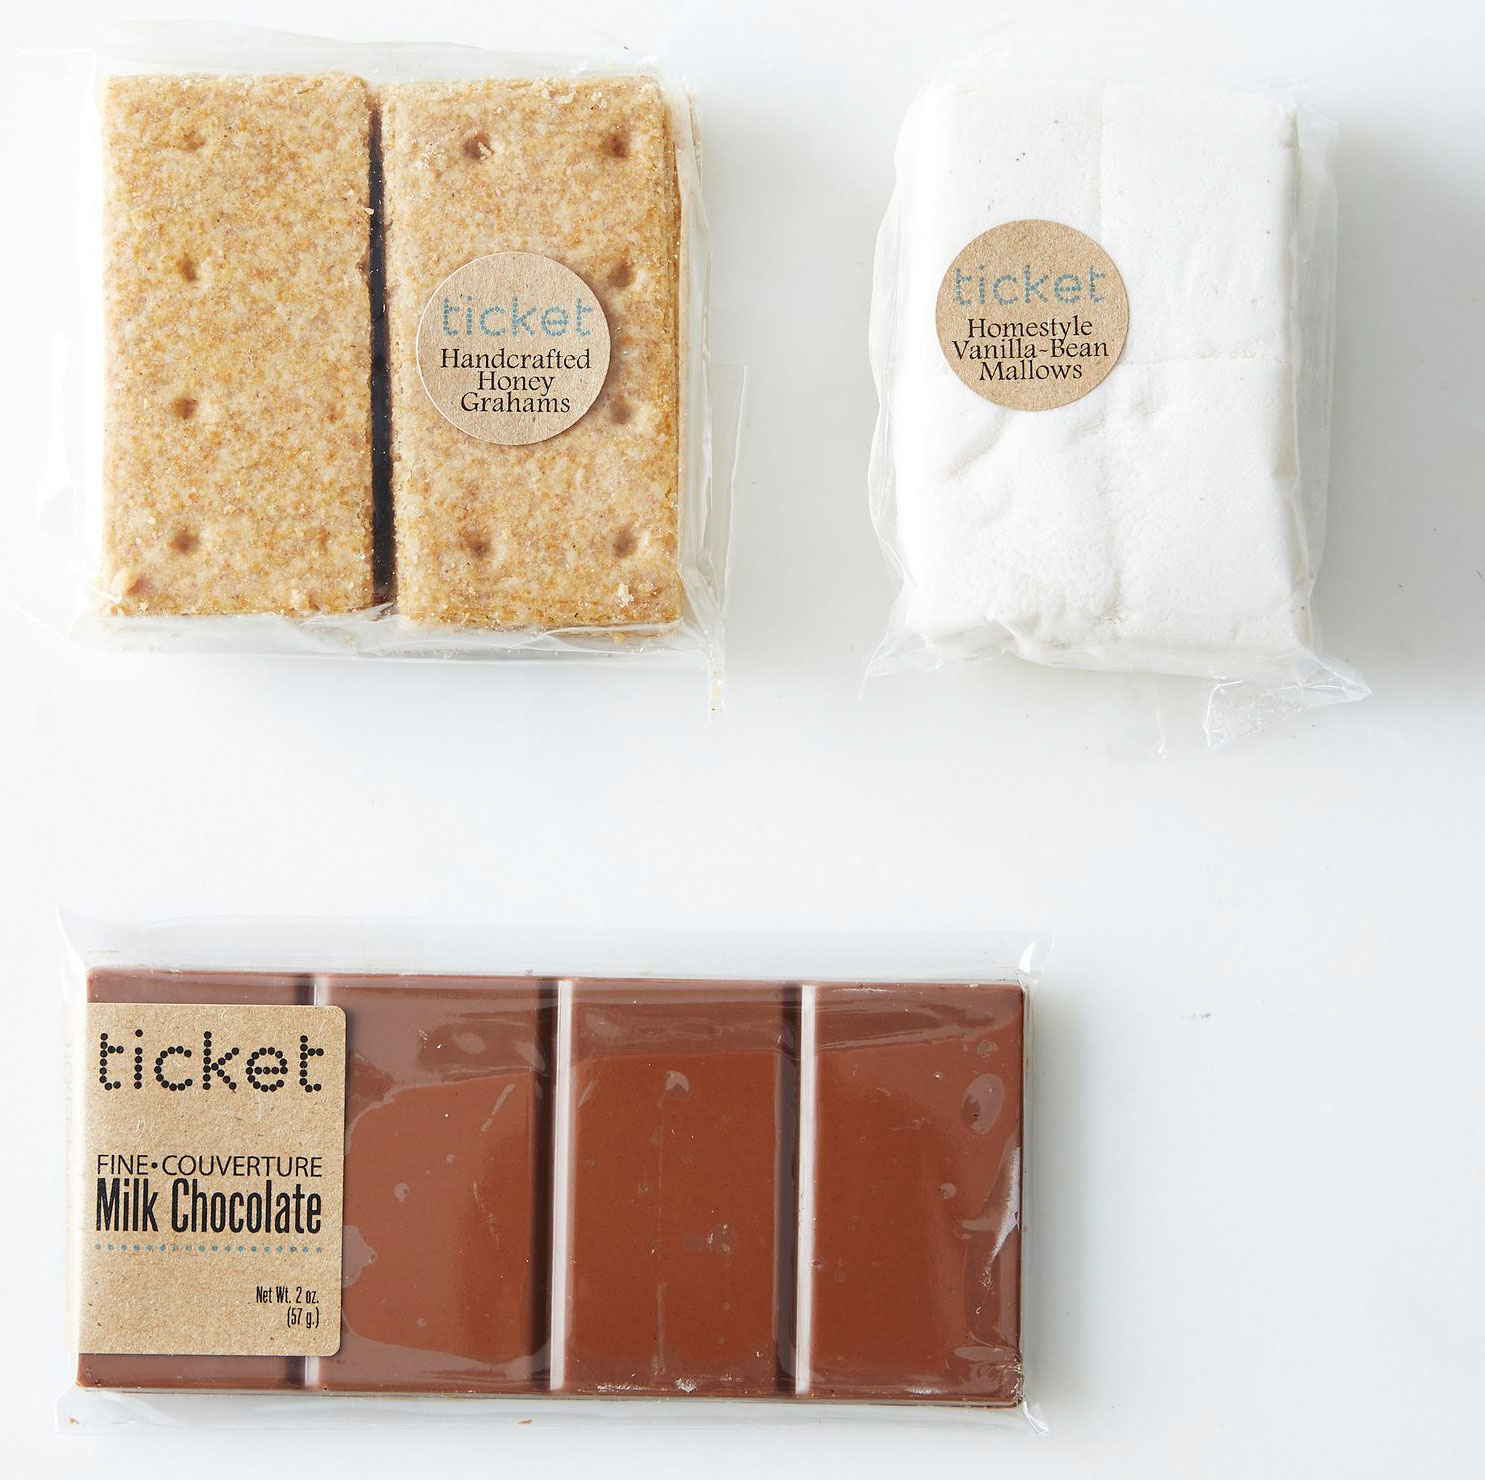 fathers-day-gifts-smores-kit